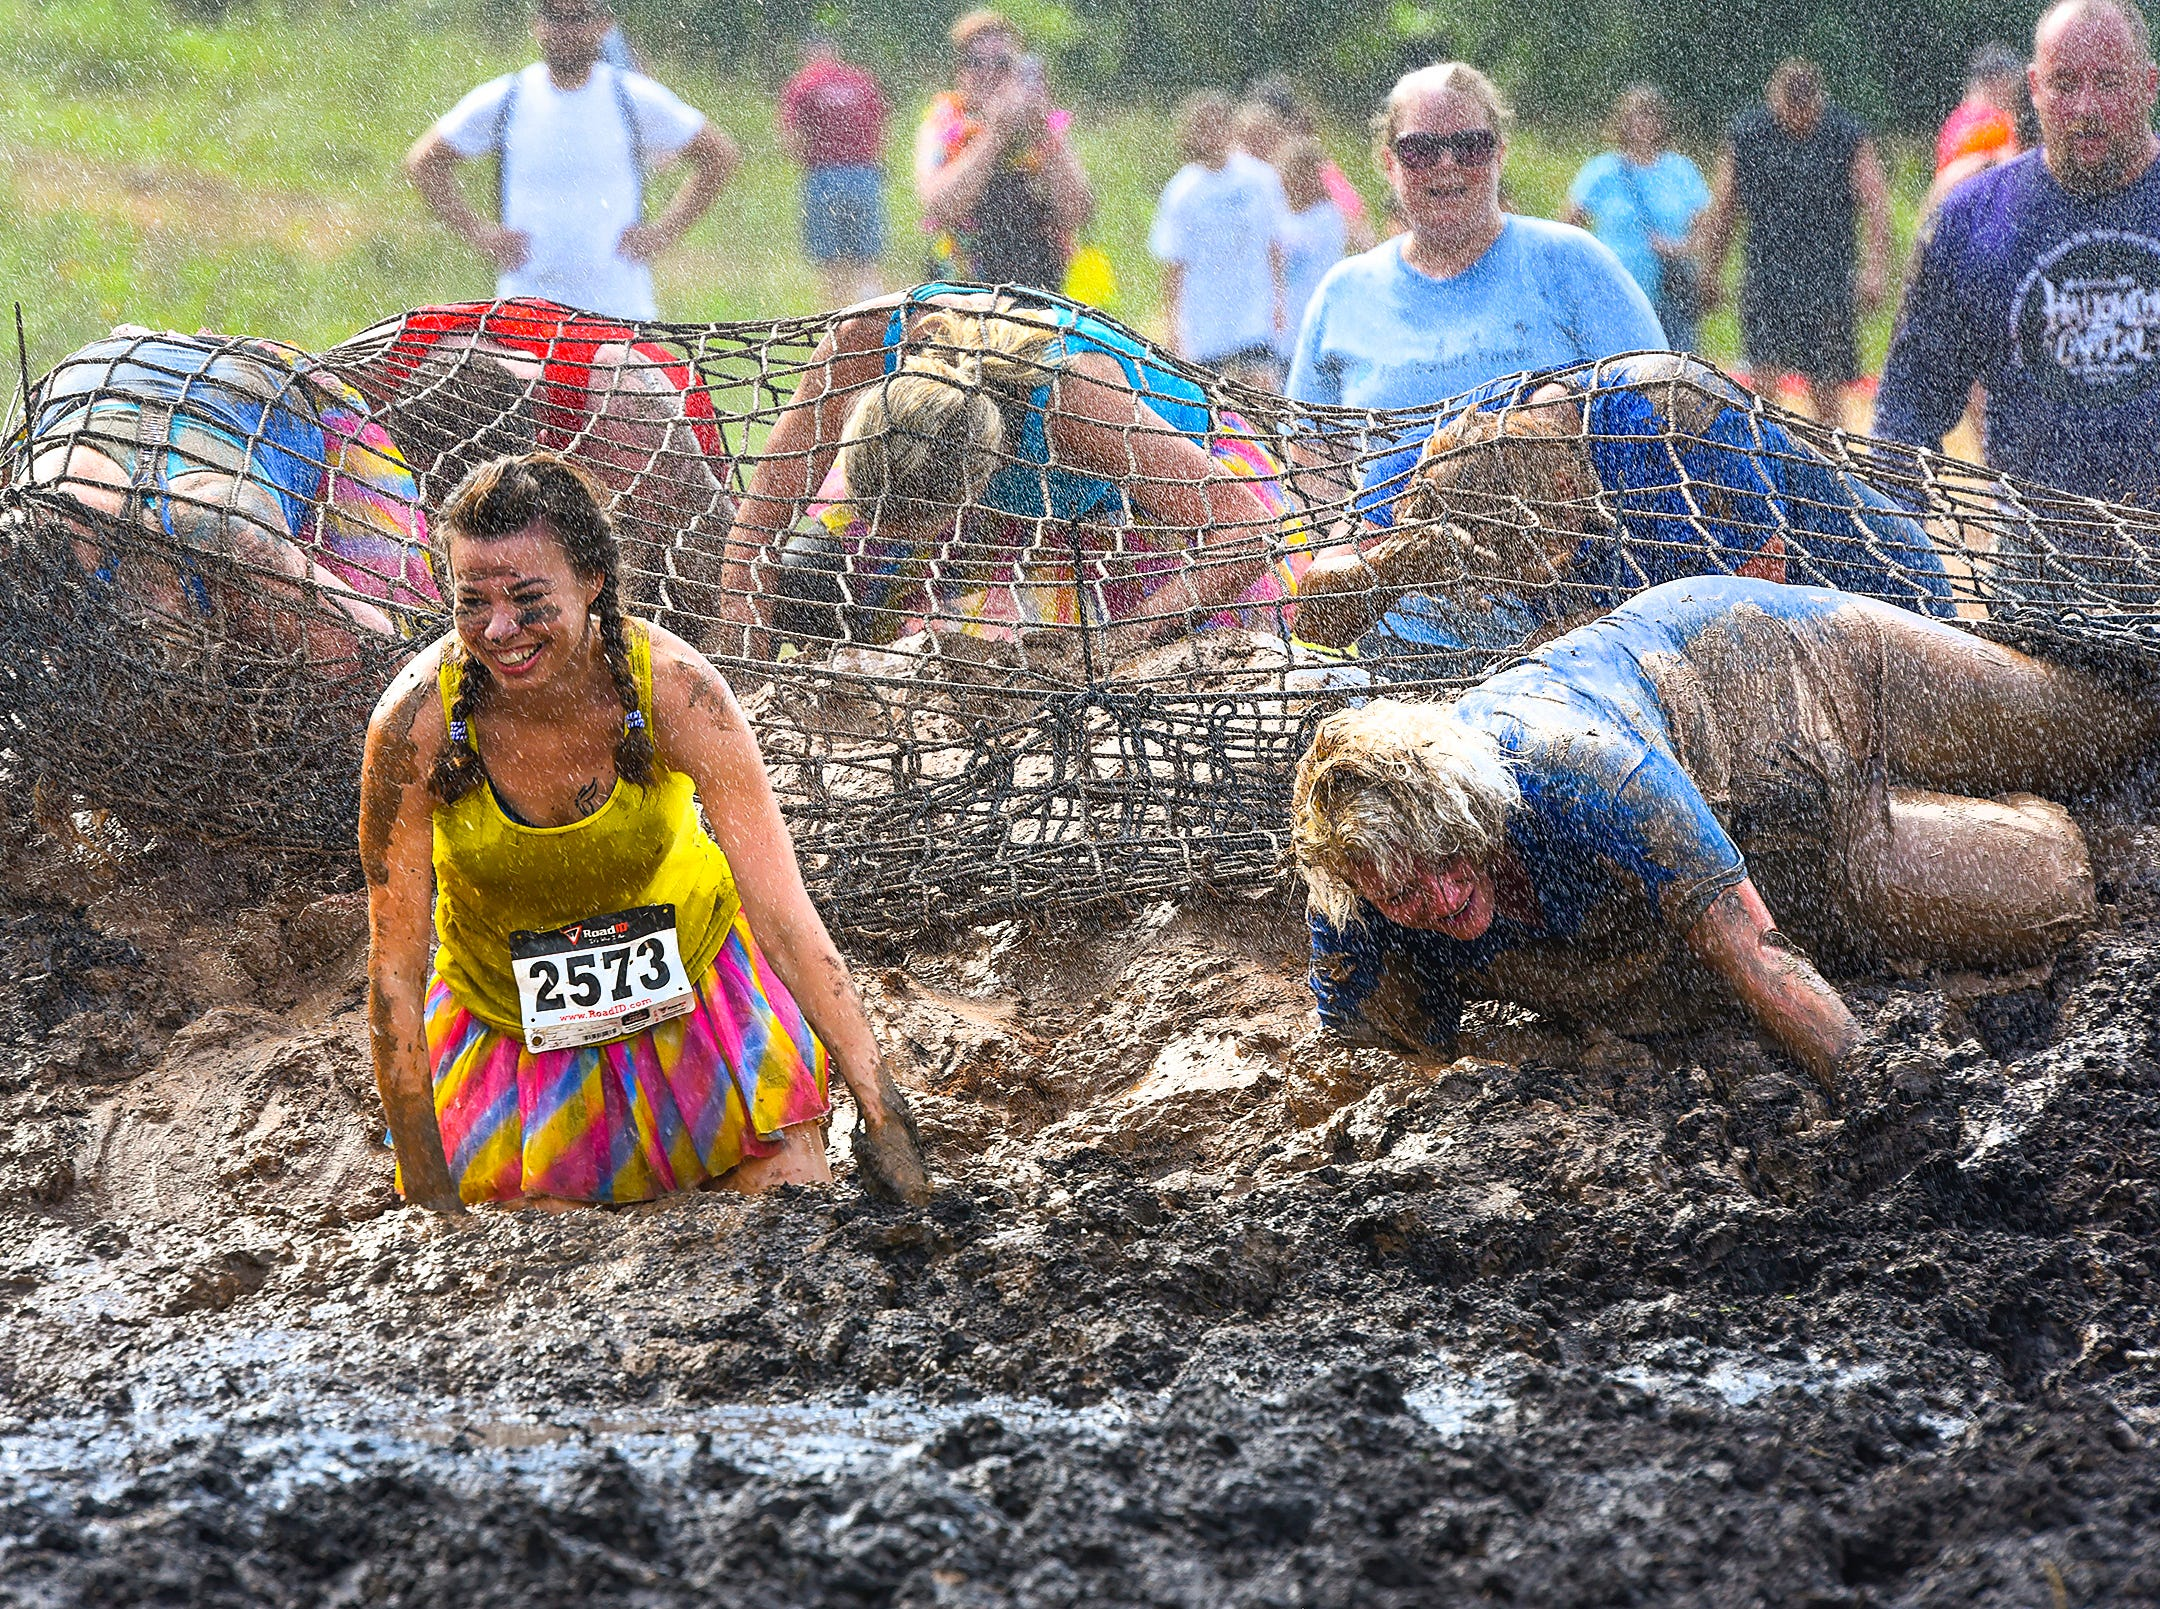 Runners crawl under the net through the water and mud in the Mudman Race Saturday, July 21, around Powder Ridge Recreation Area in Kimball. About 700 runners took the challenge to concur the 2k or 5k courses.